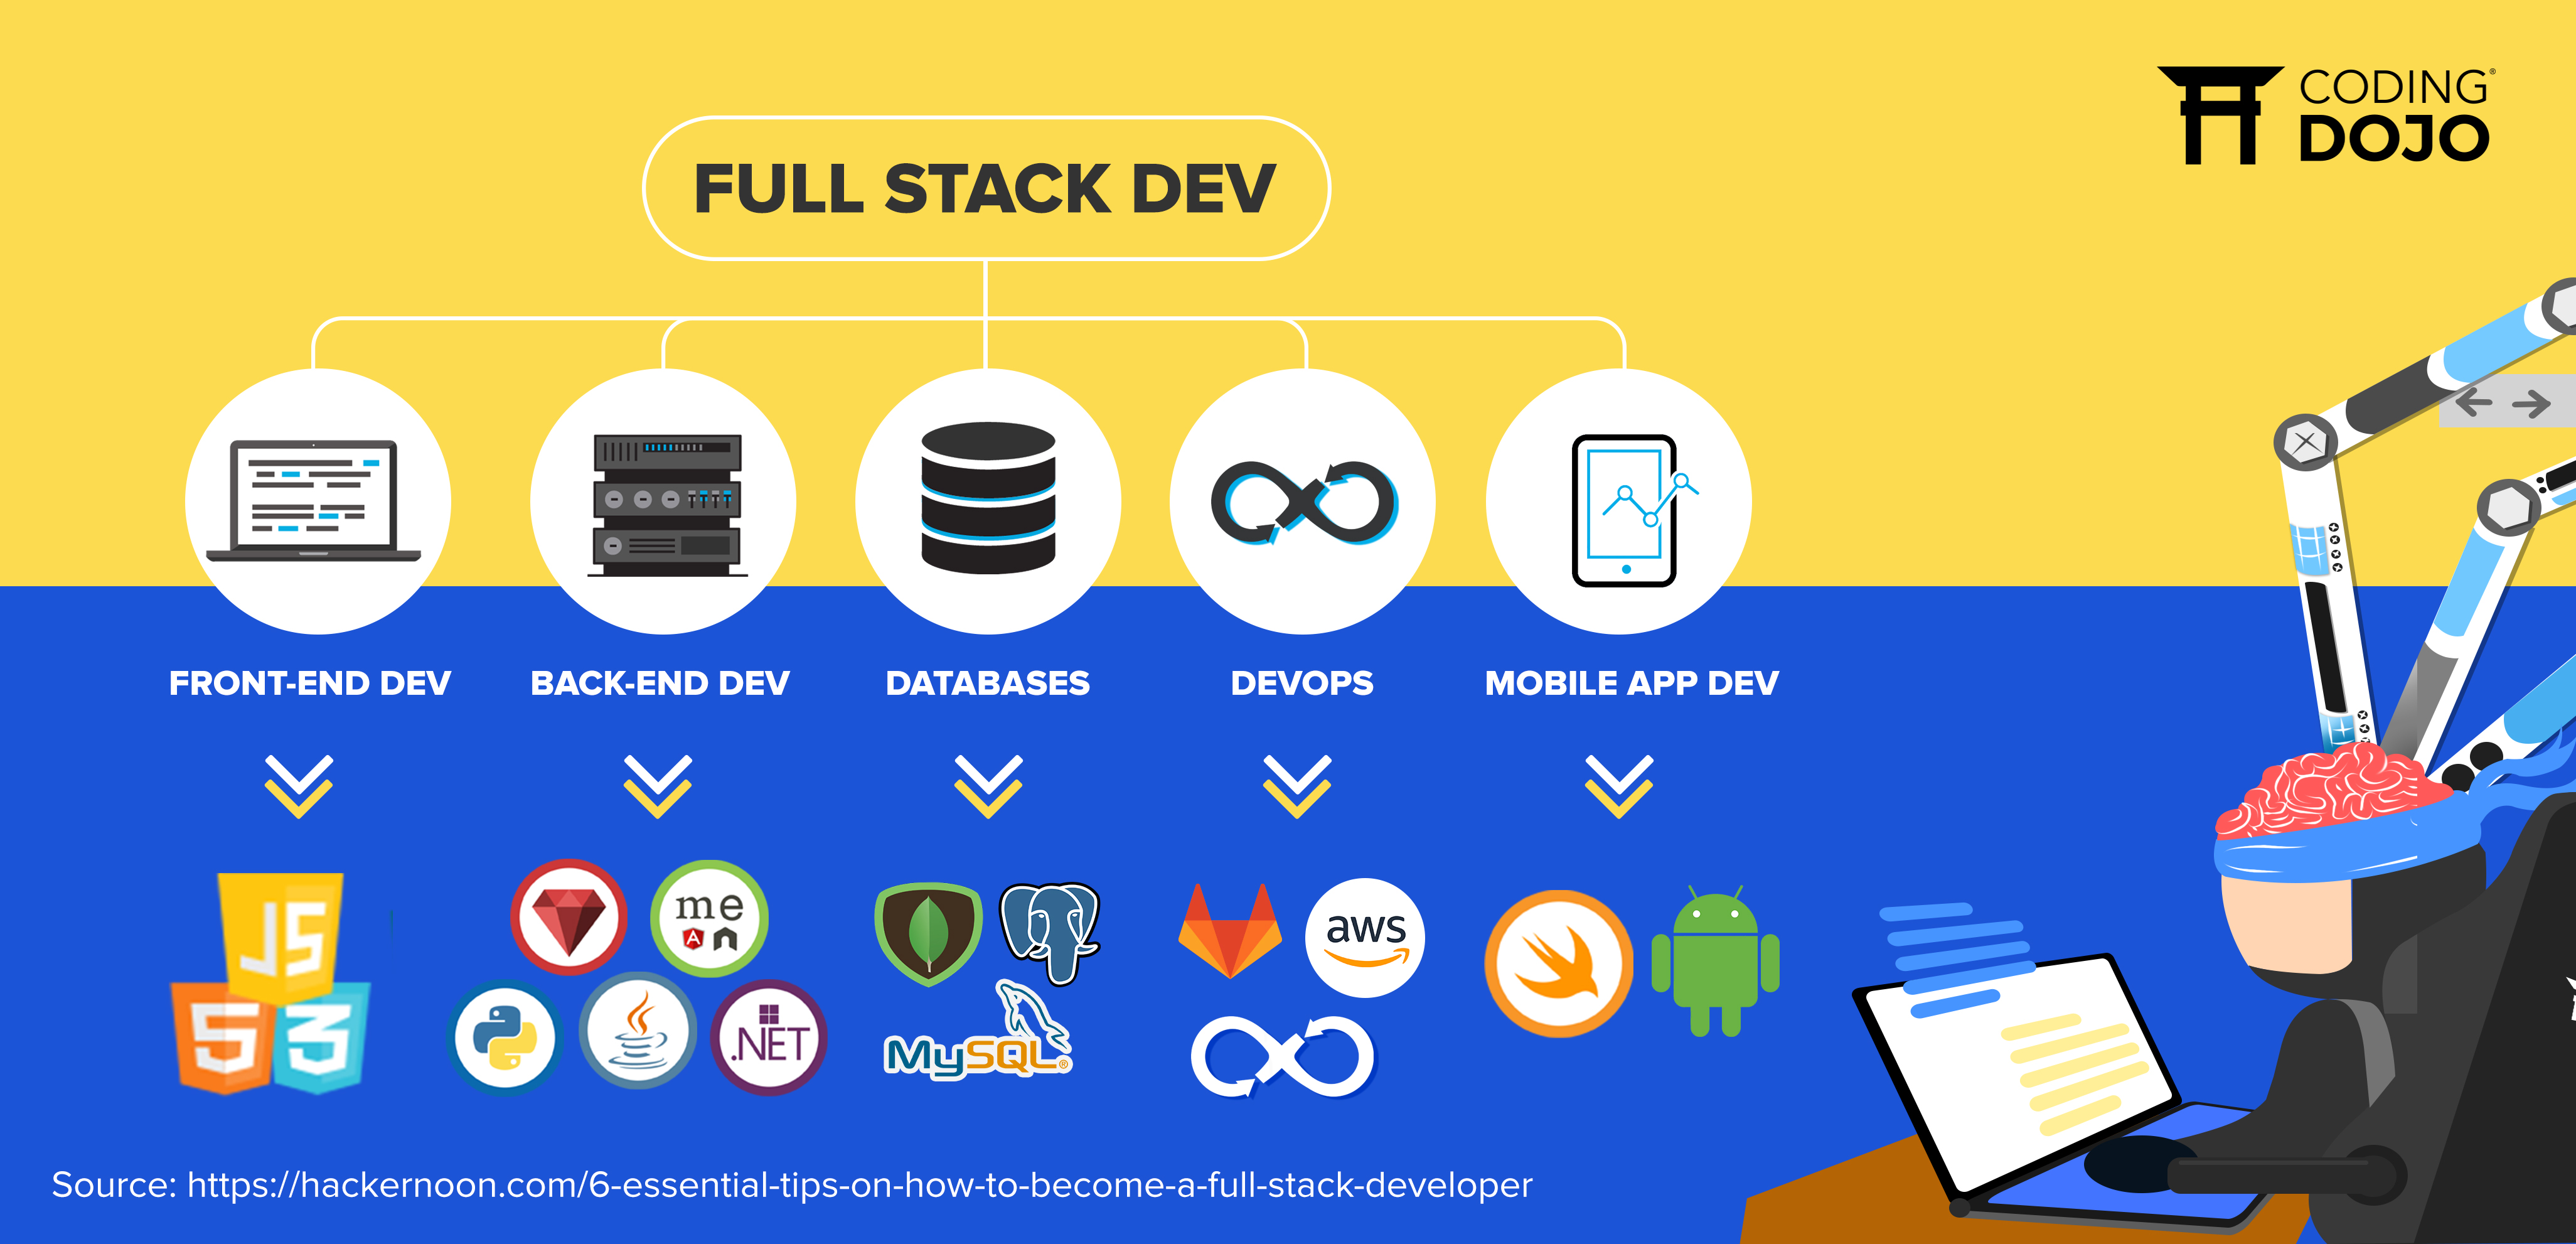 FULL STACK DEV GRAPH (2)  - FULL STACK DEV GRAPH 2 - 10 Useful Facts About Full Stack Development